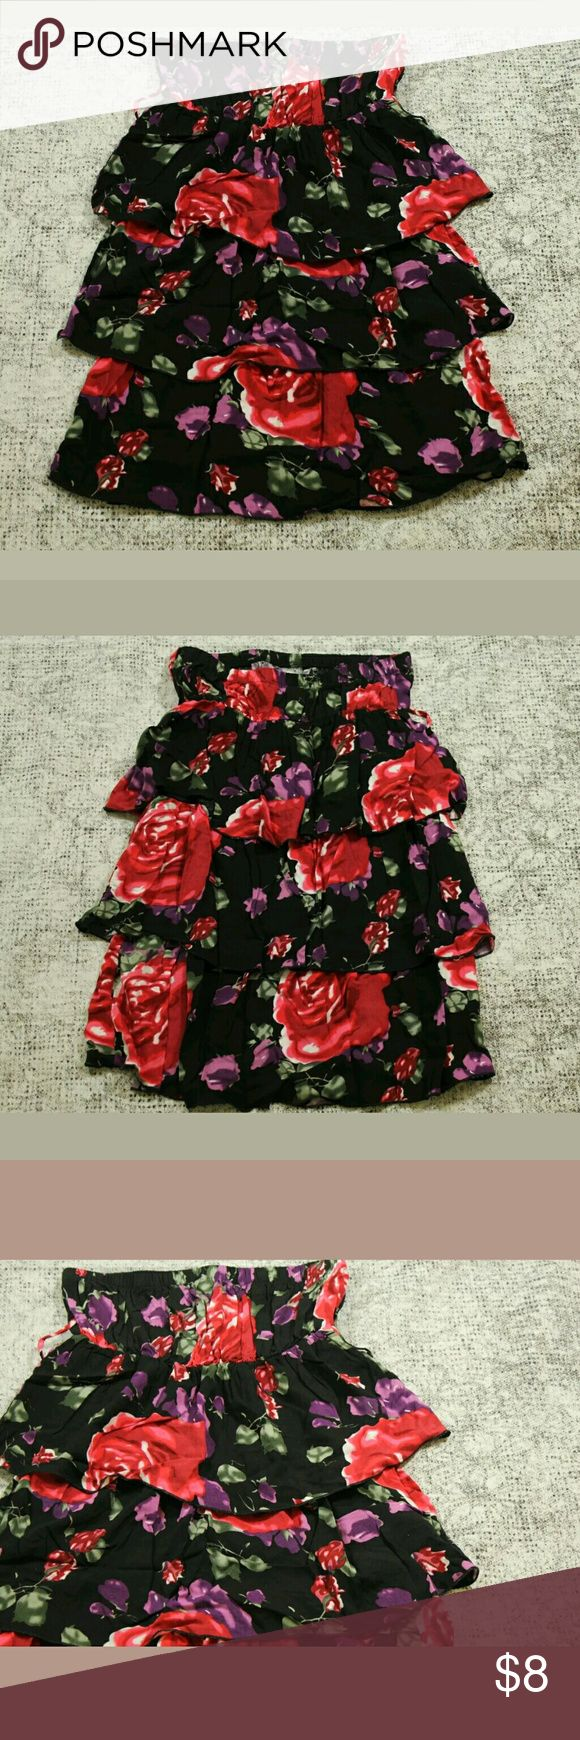 "Body Central Dress Size Small Floral Print No Belt Body Central Dress Size Small Floral Print Strapless Ruffled Tiered No Belt Size:  Small Condition:  Great Pre-Owned Condition from clean pet/smoke free home. Material:  100% Polyester  Measurements: Length: 23"" Bust (Pit to Pit): 12.5"" Body Central Dresses Strapless"